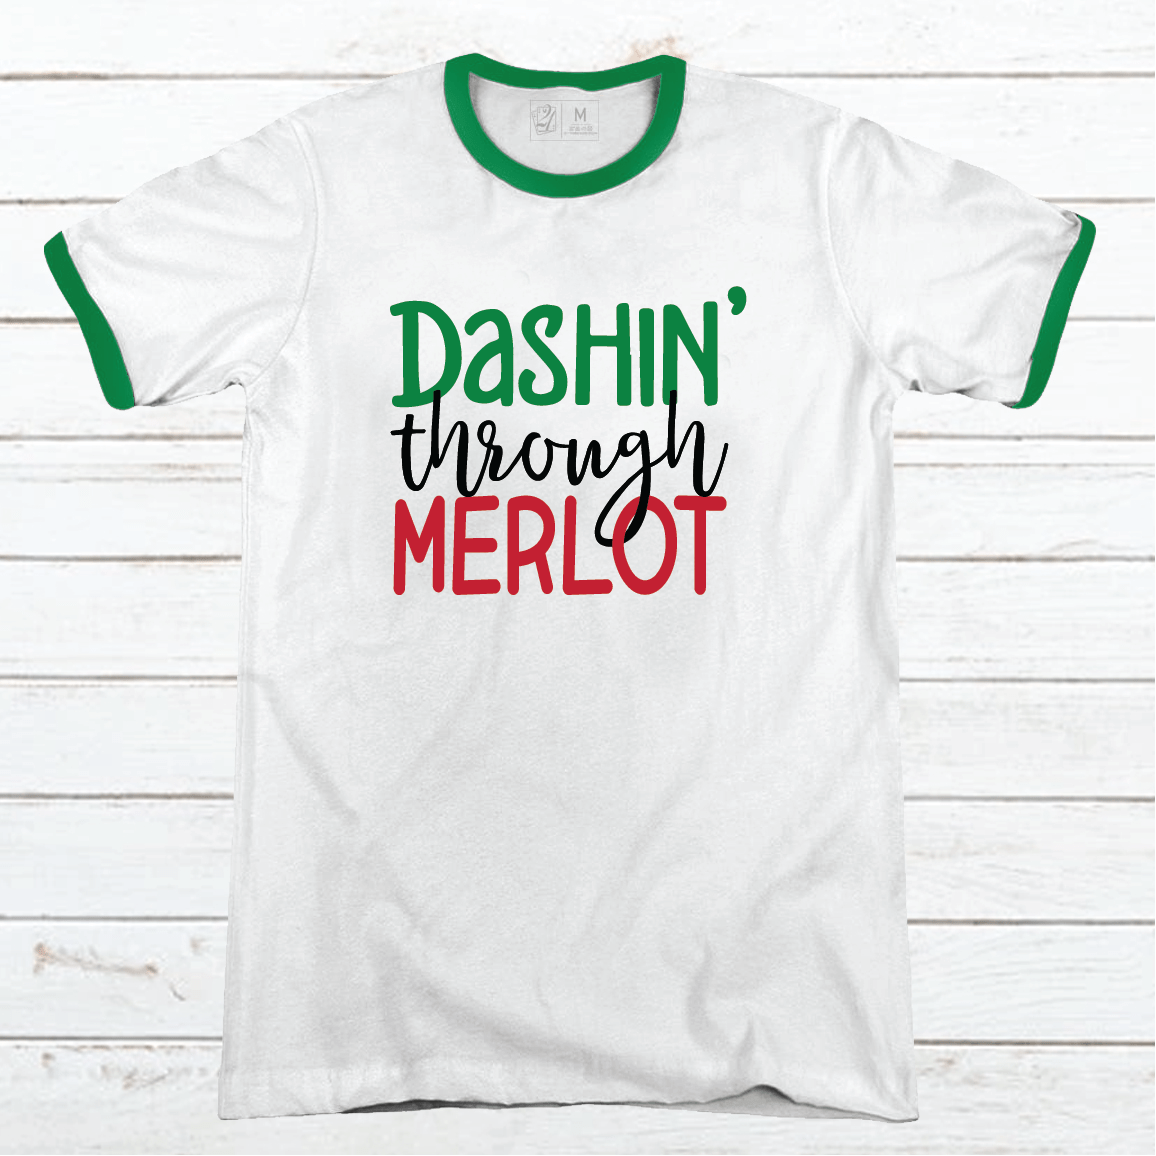 DASHIN THROUGH MERLOT Premium Christmas Ringer Tee